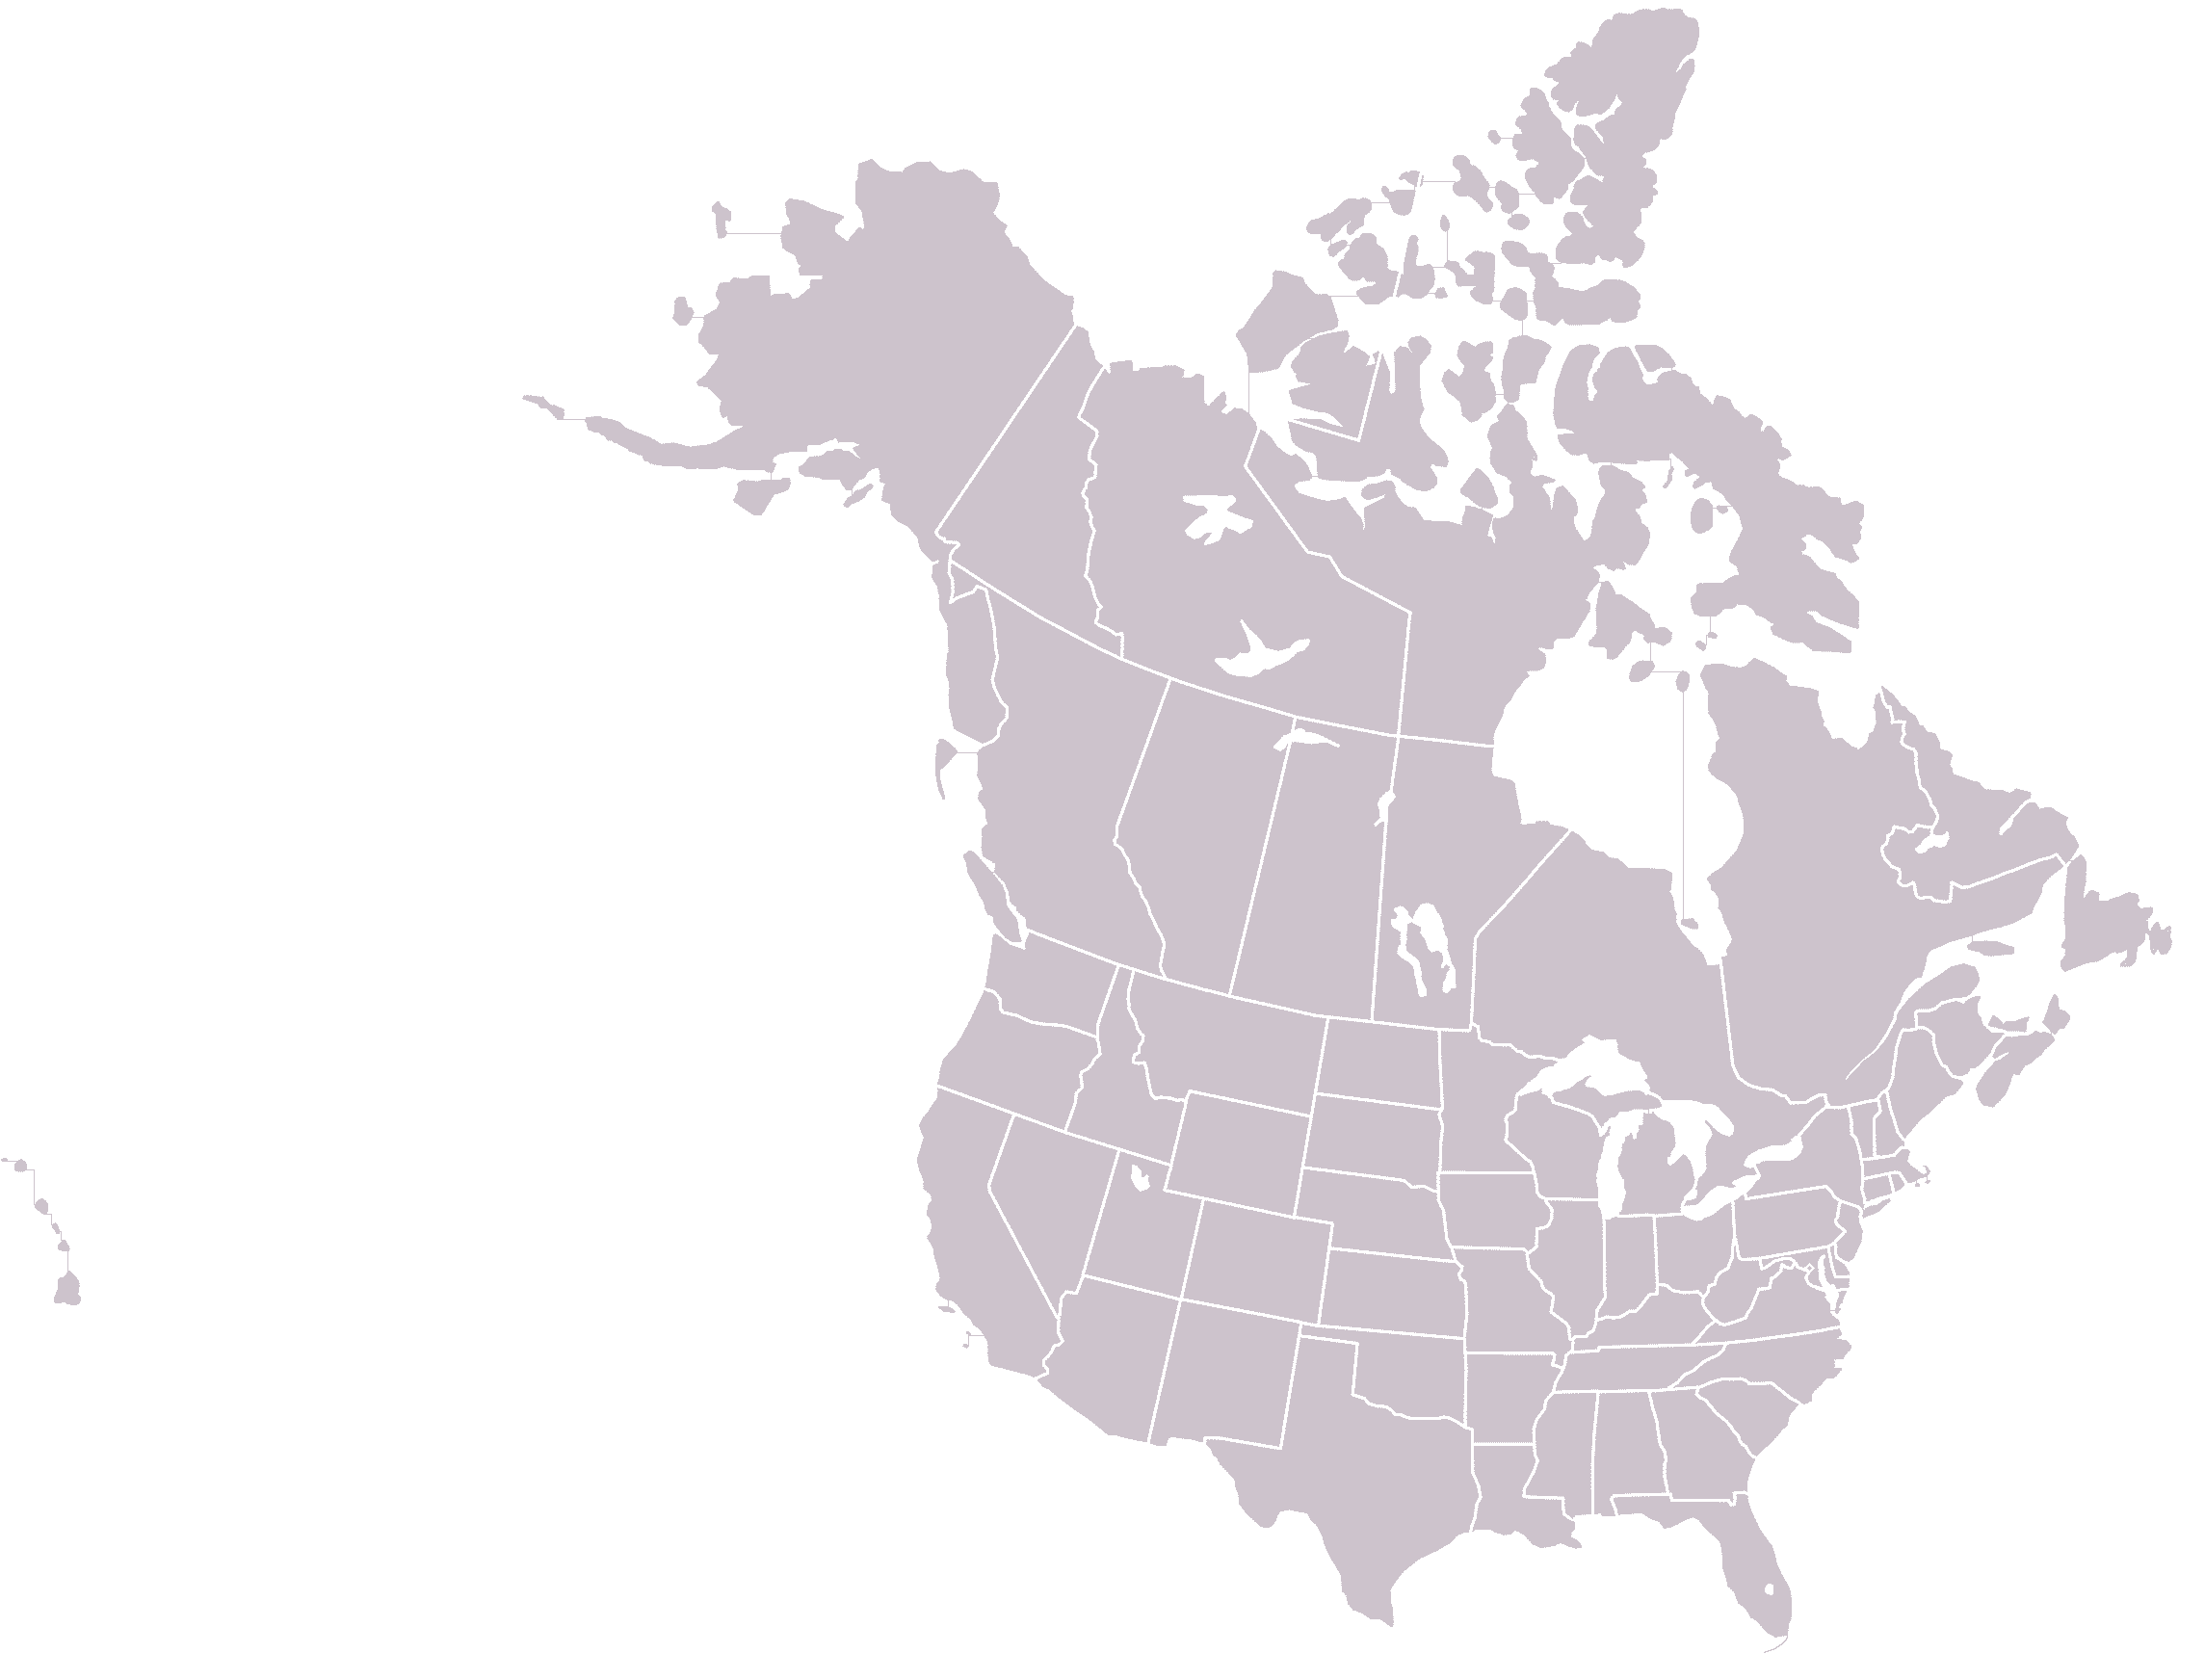 Blank Map Of America And Canada File:BlankMap USA states Canada provinces.png   Wikimedia Commons